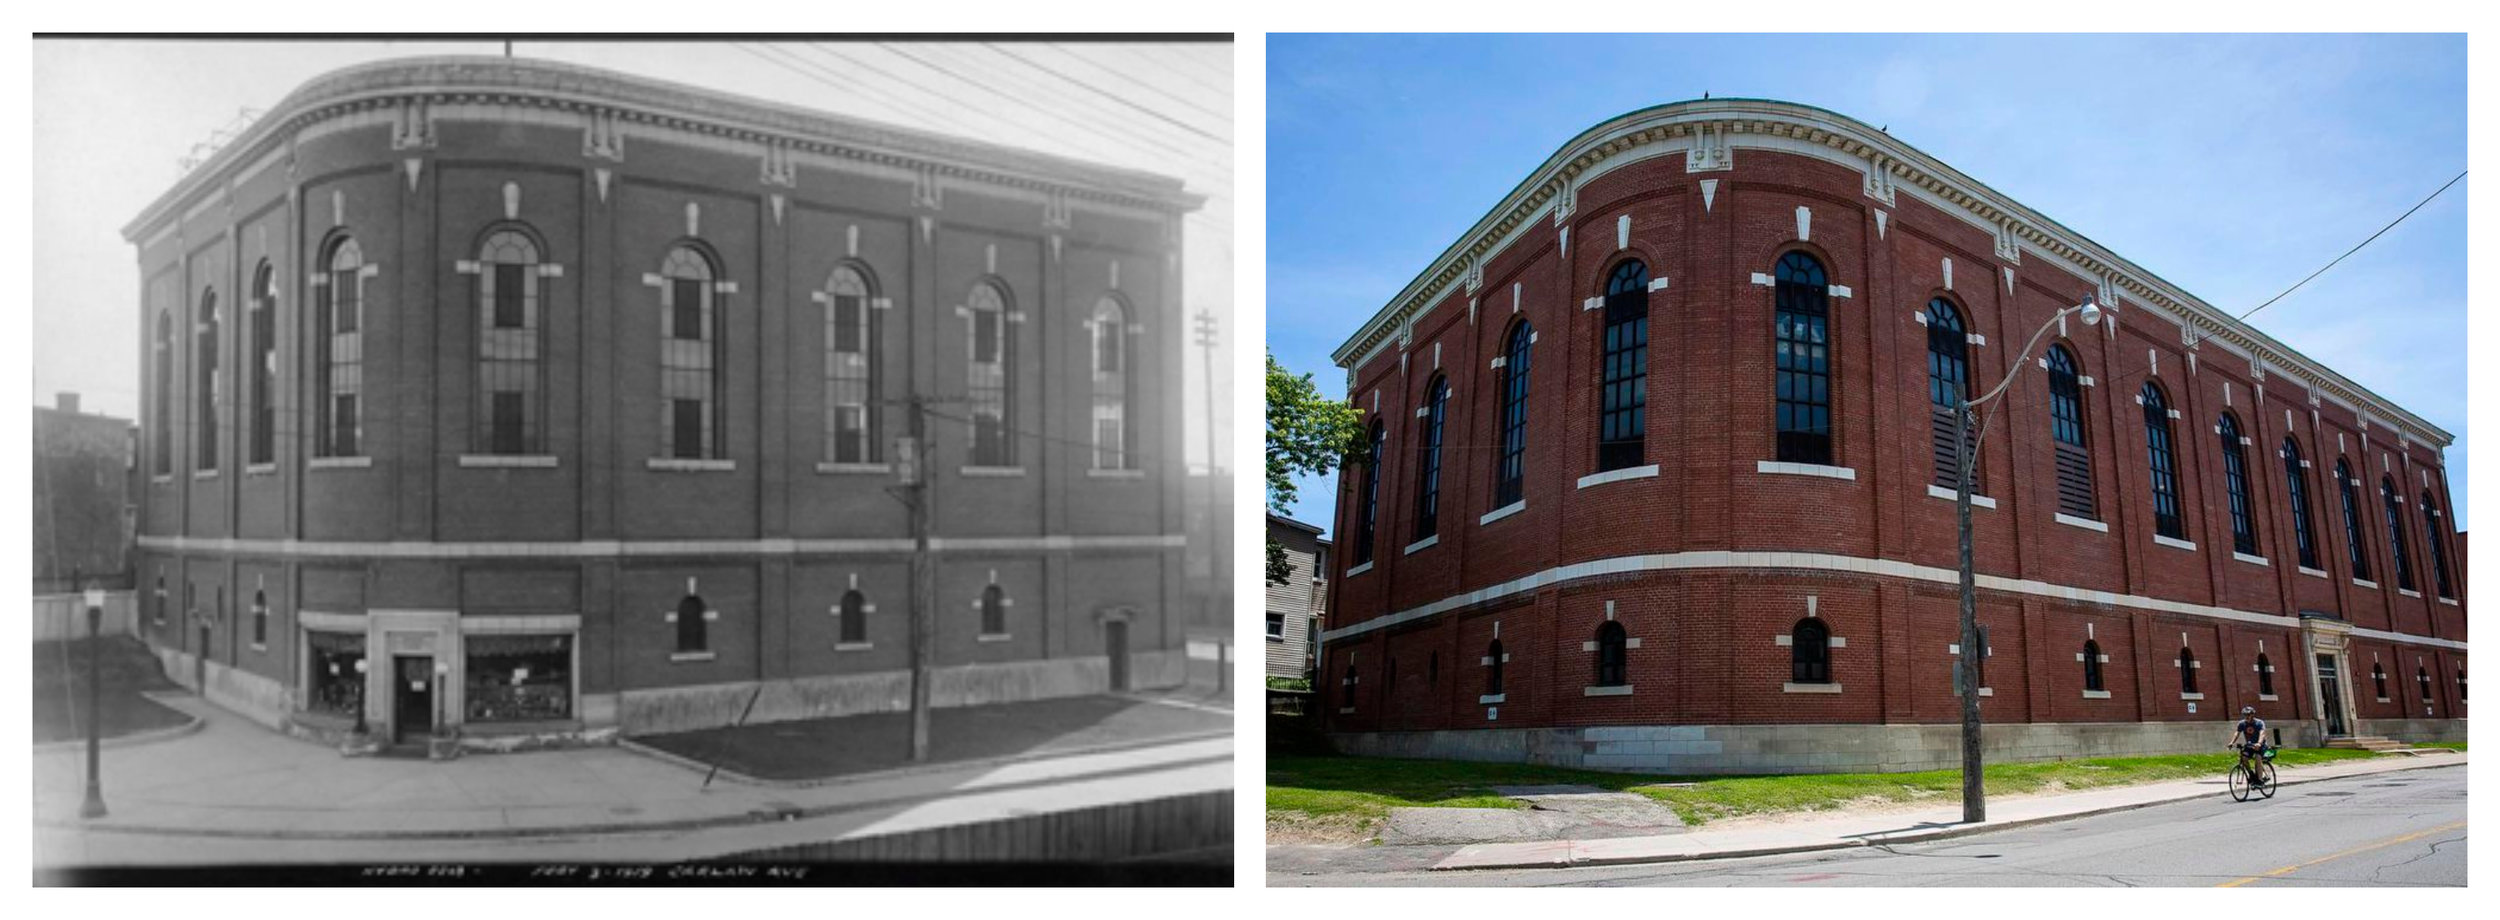 Carlaw Hydro Building 1919 (left) and today (right.)